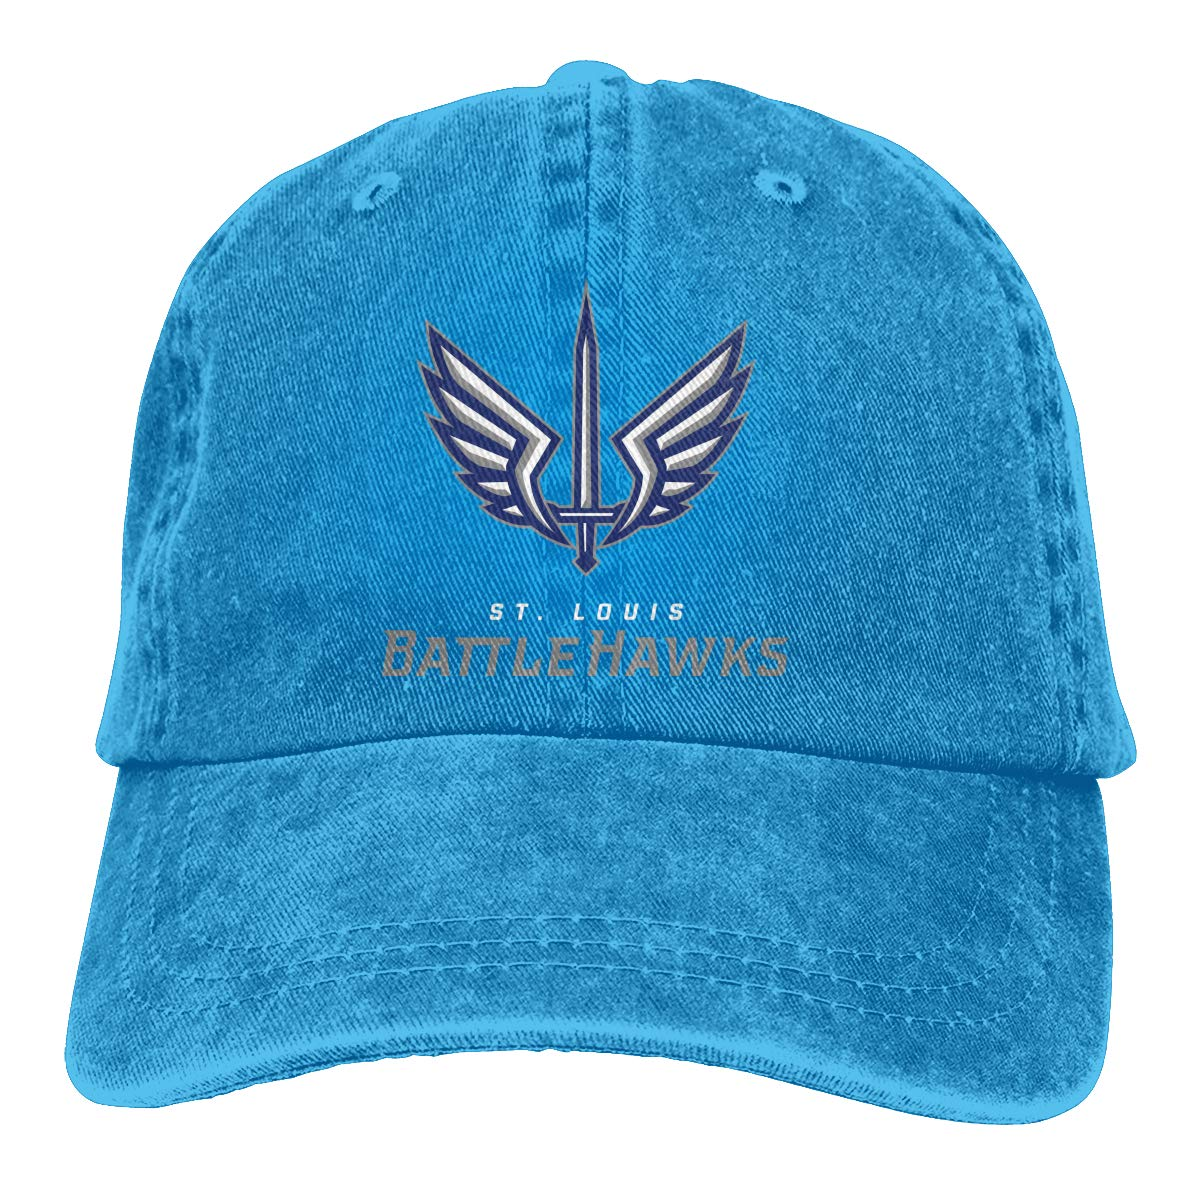 St Louis BattleHawks Unisex Fashion Adjustable Sports Hat Skull Cap